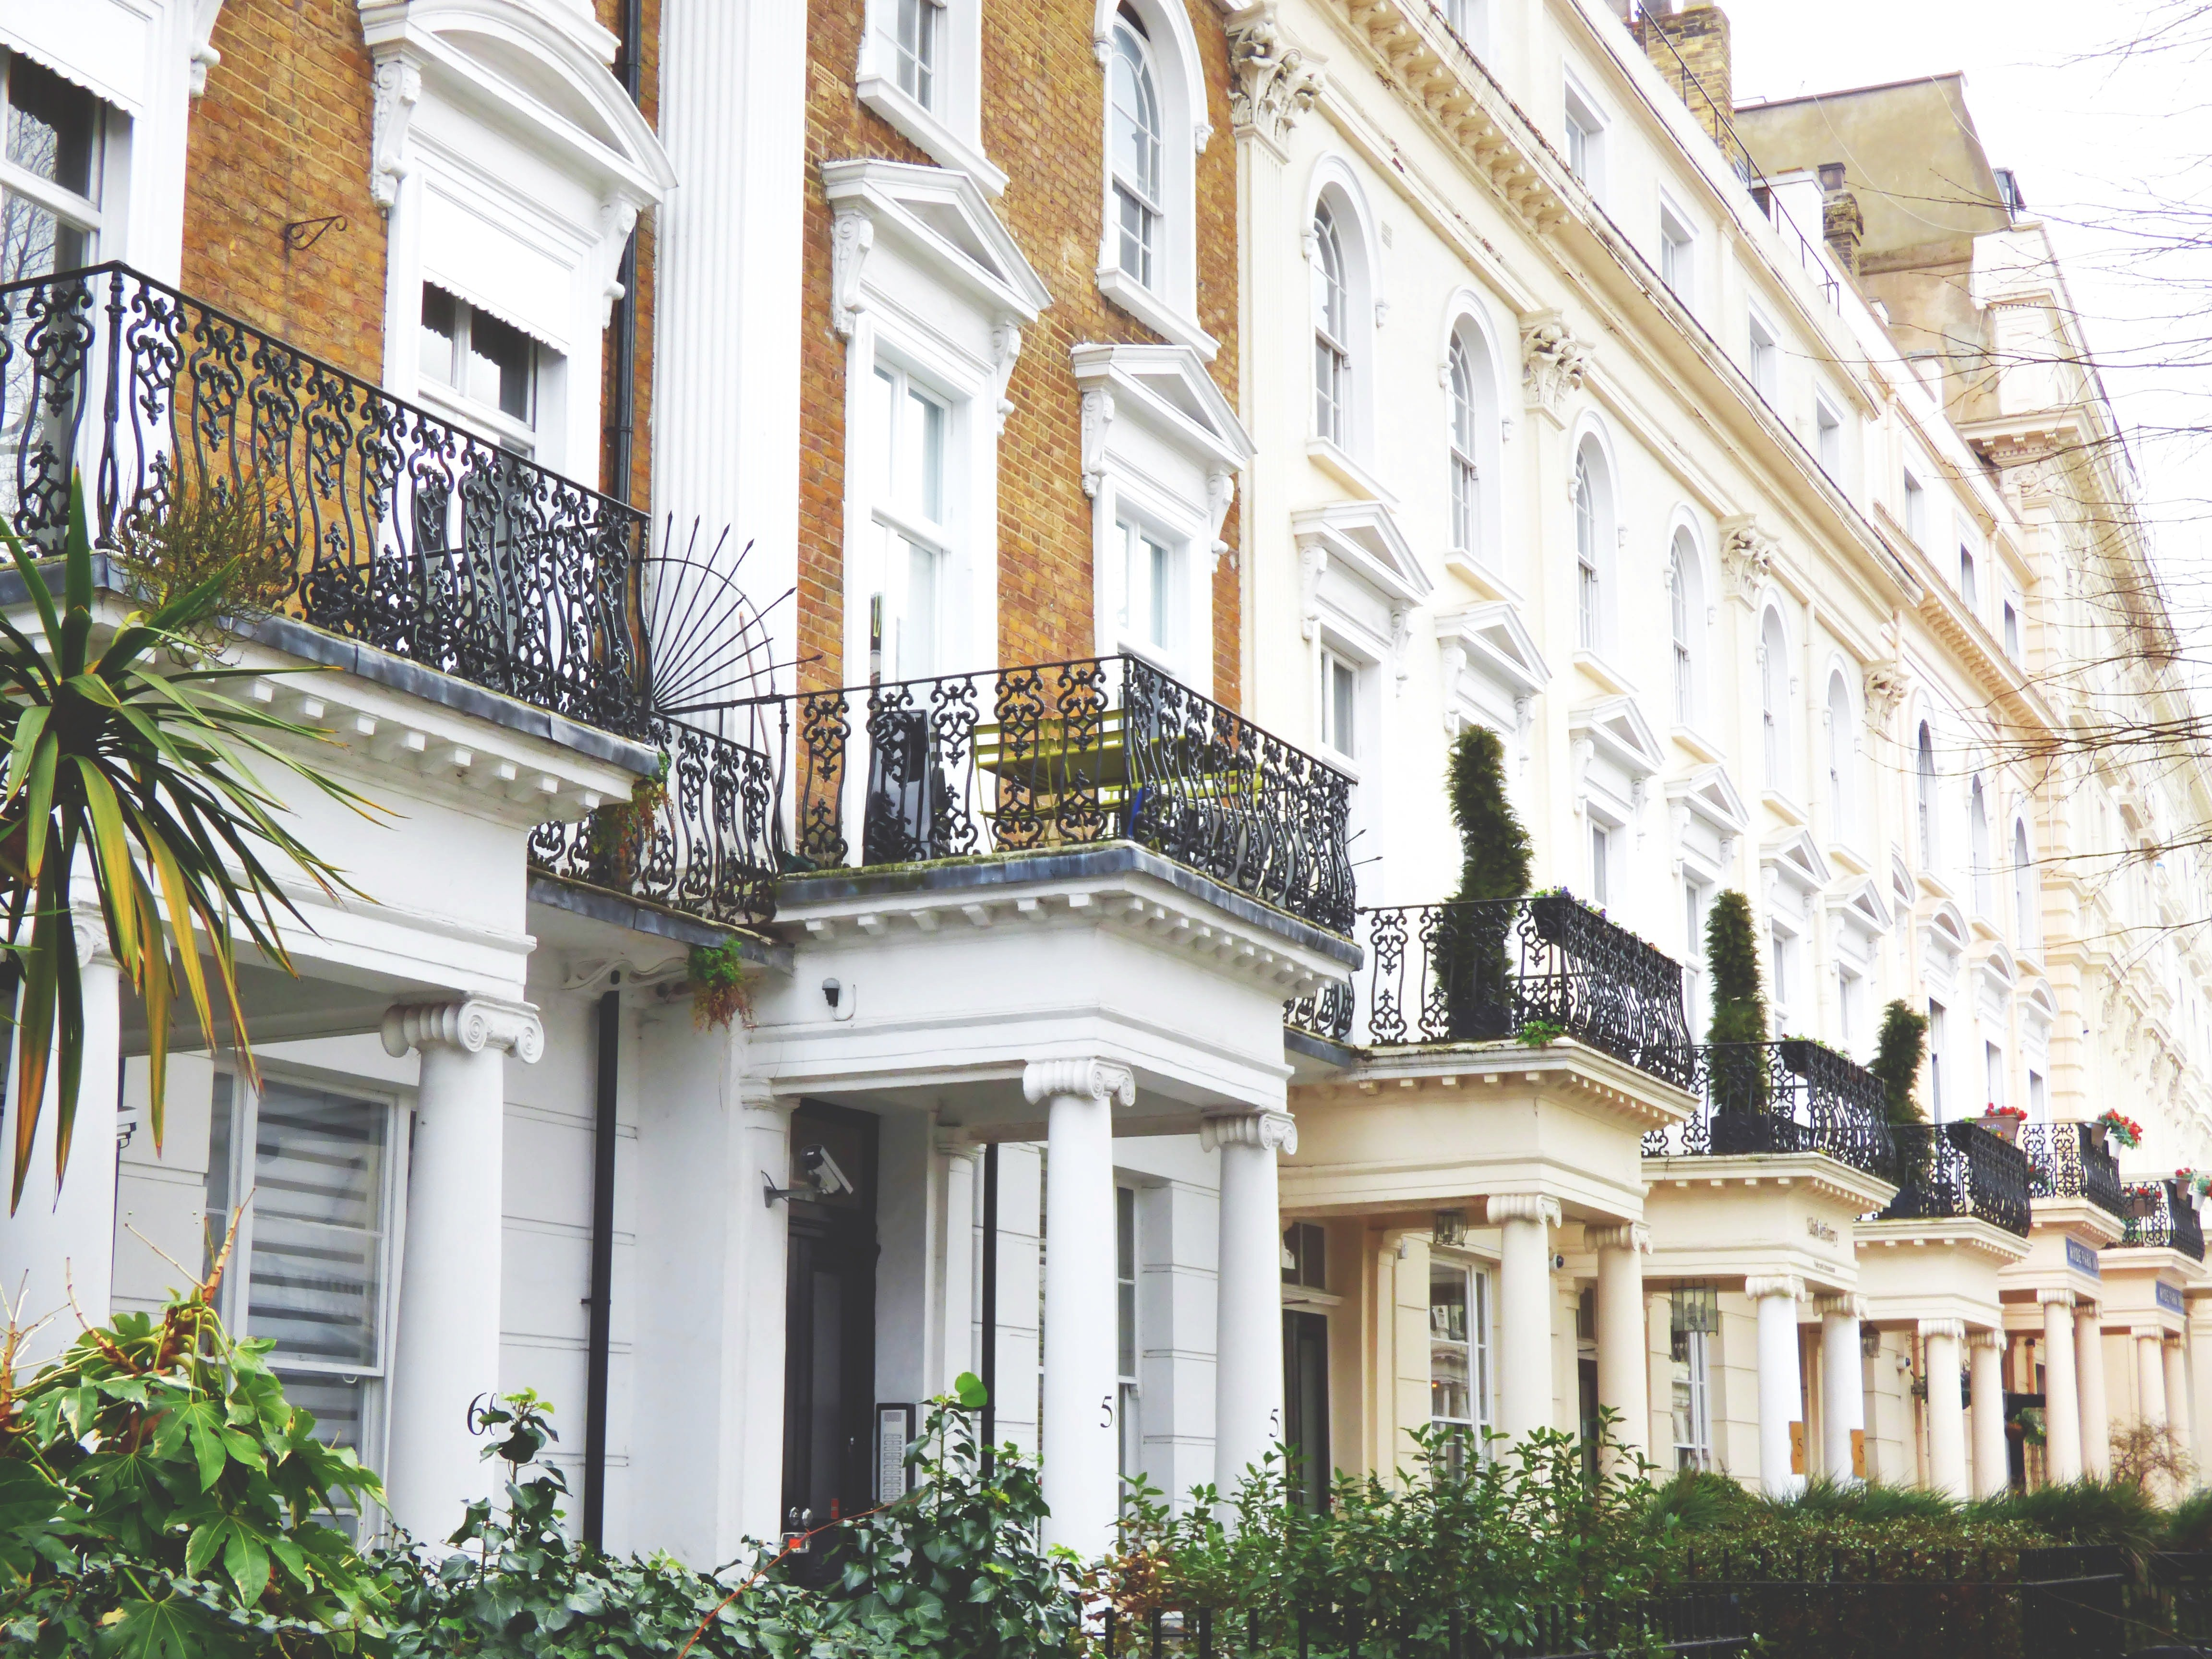 The Pros & Cons Of Investing In Property